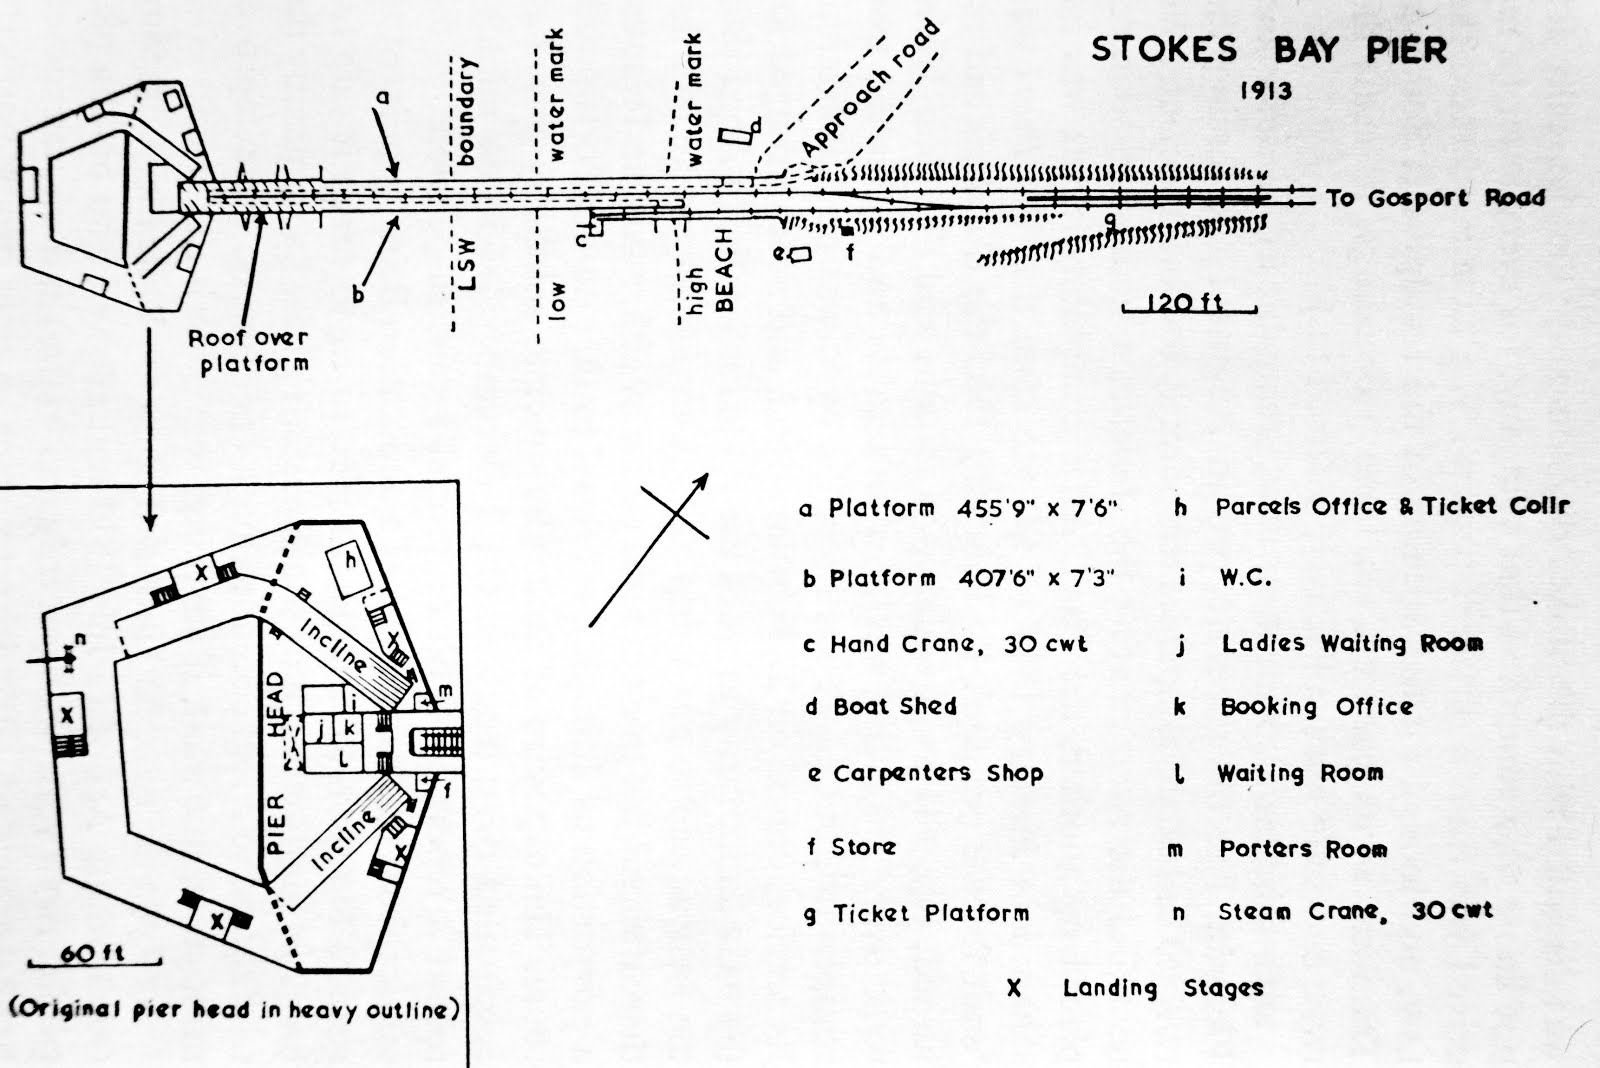 Plan of Stokes Bay Pier